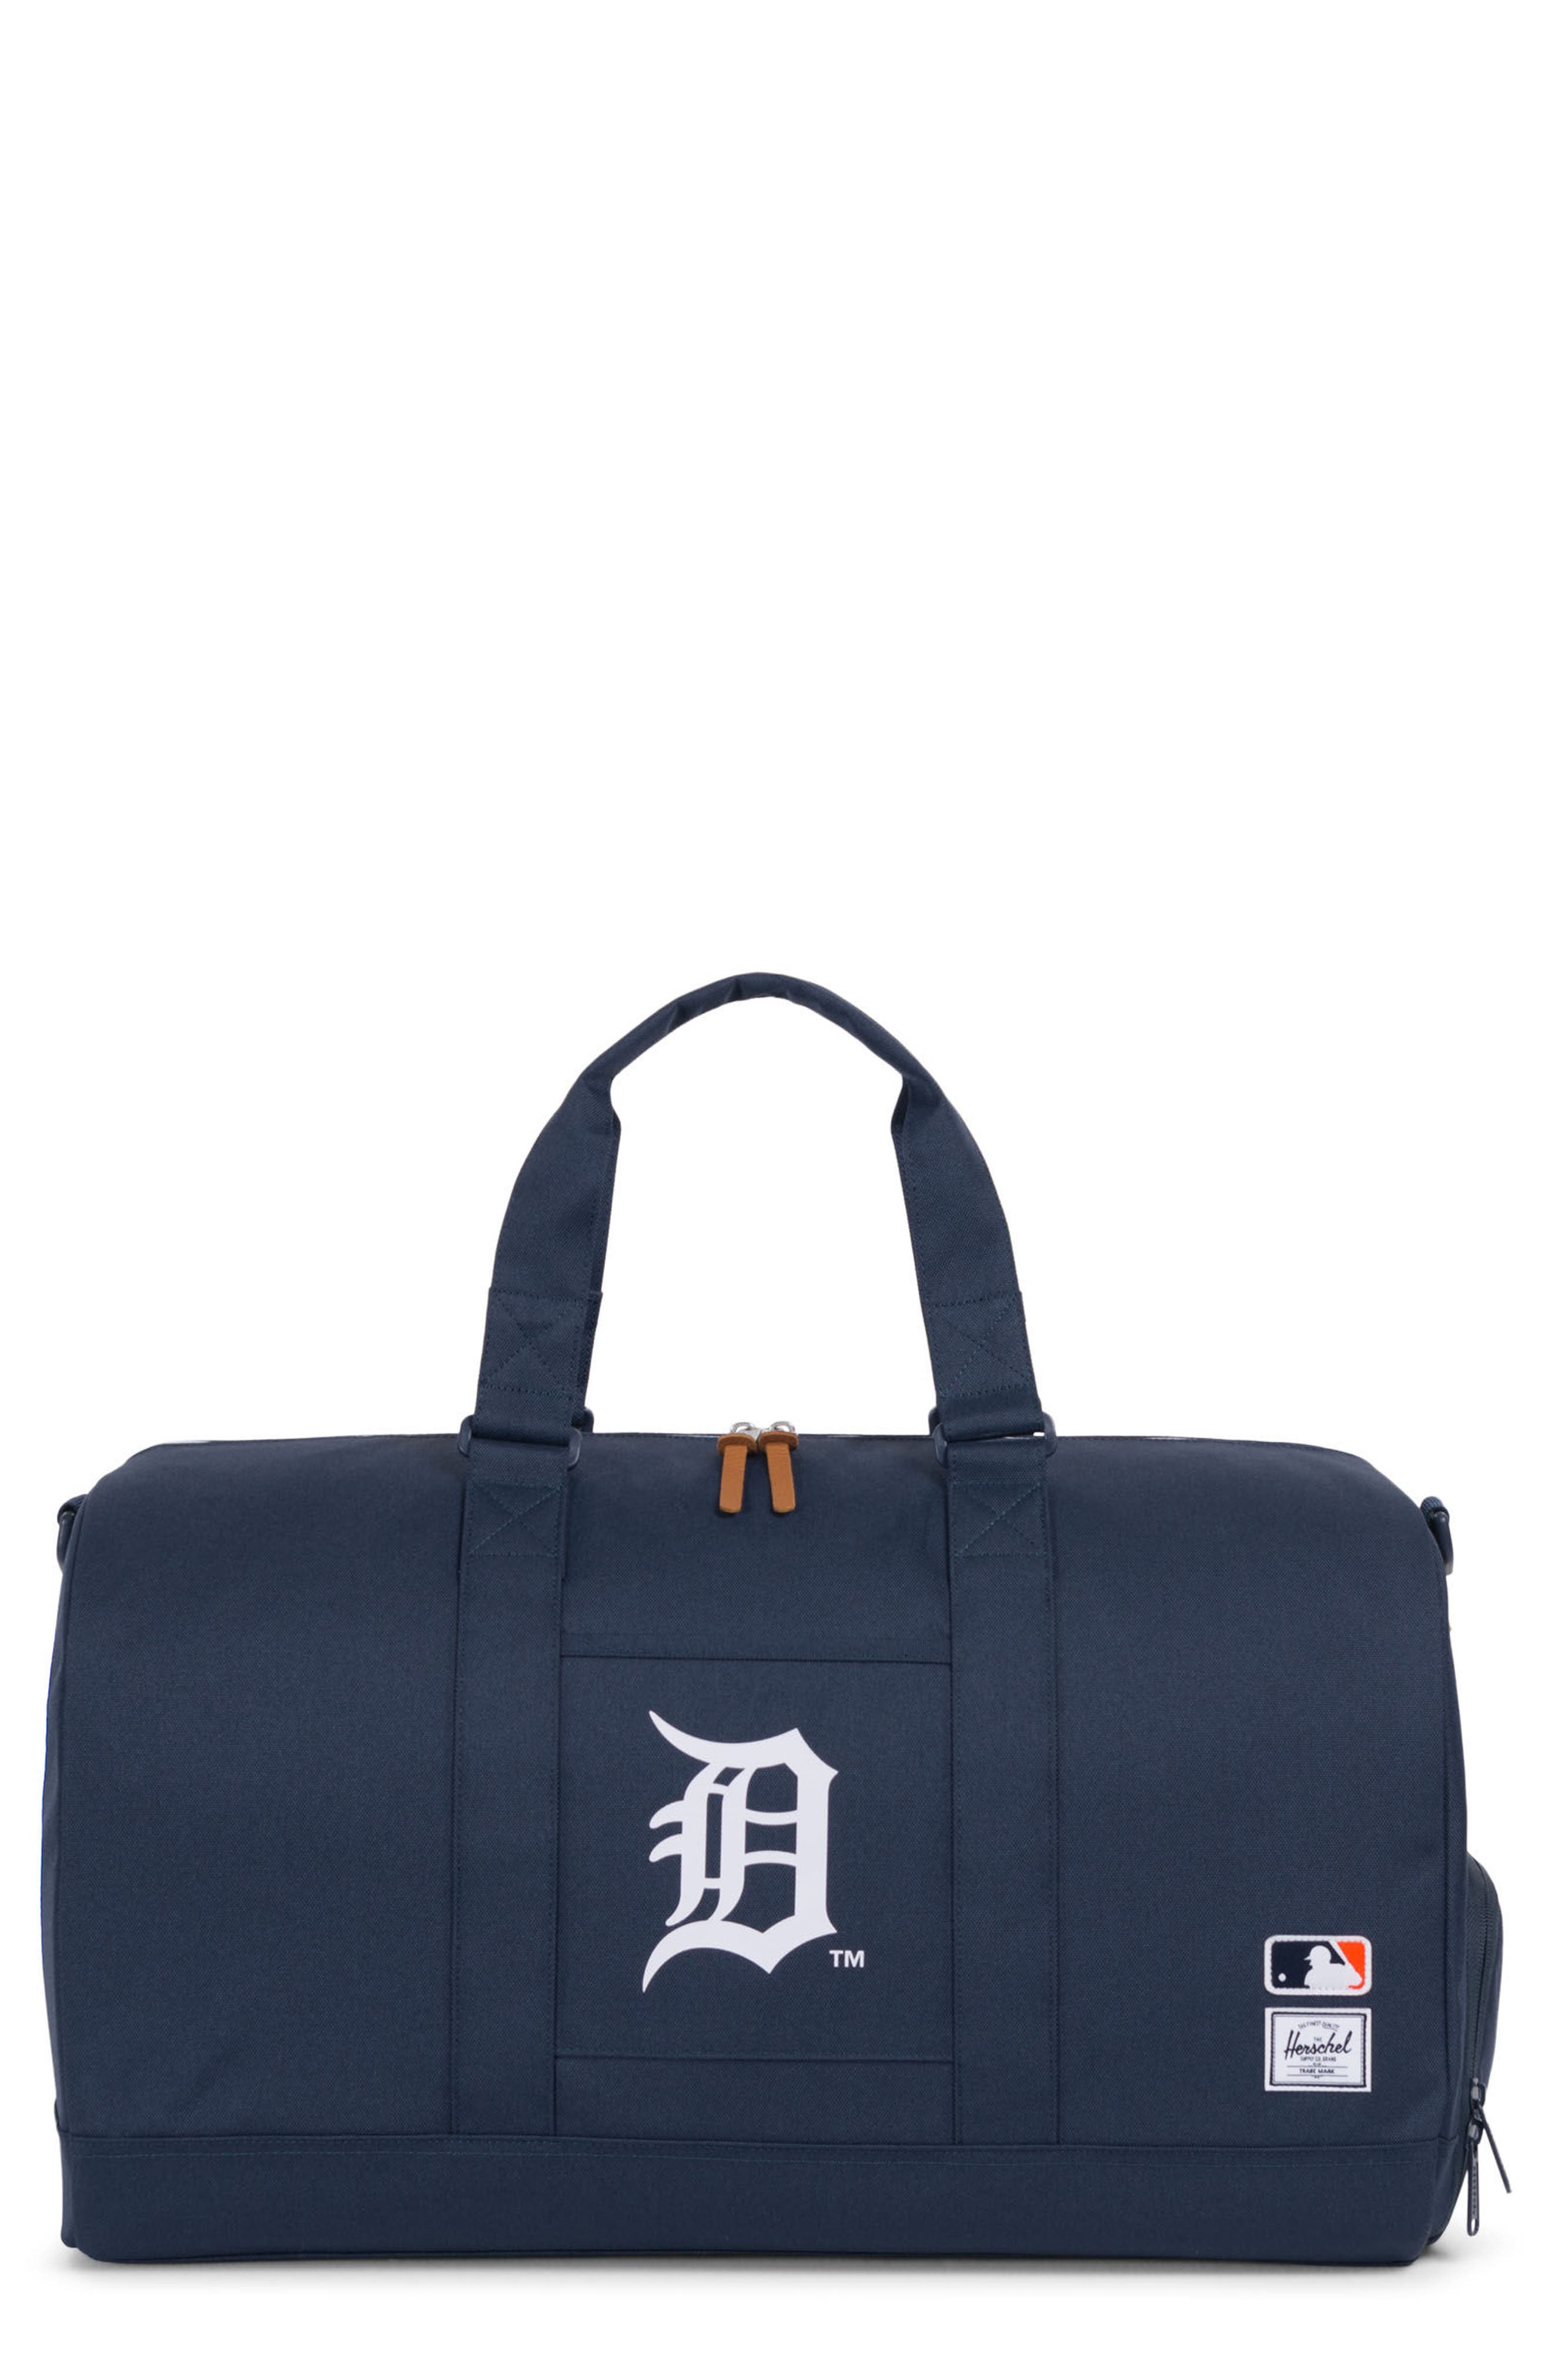 Novel - MLB American League Duffel Bag,                         Main,                         color, Detroit Tigers